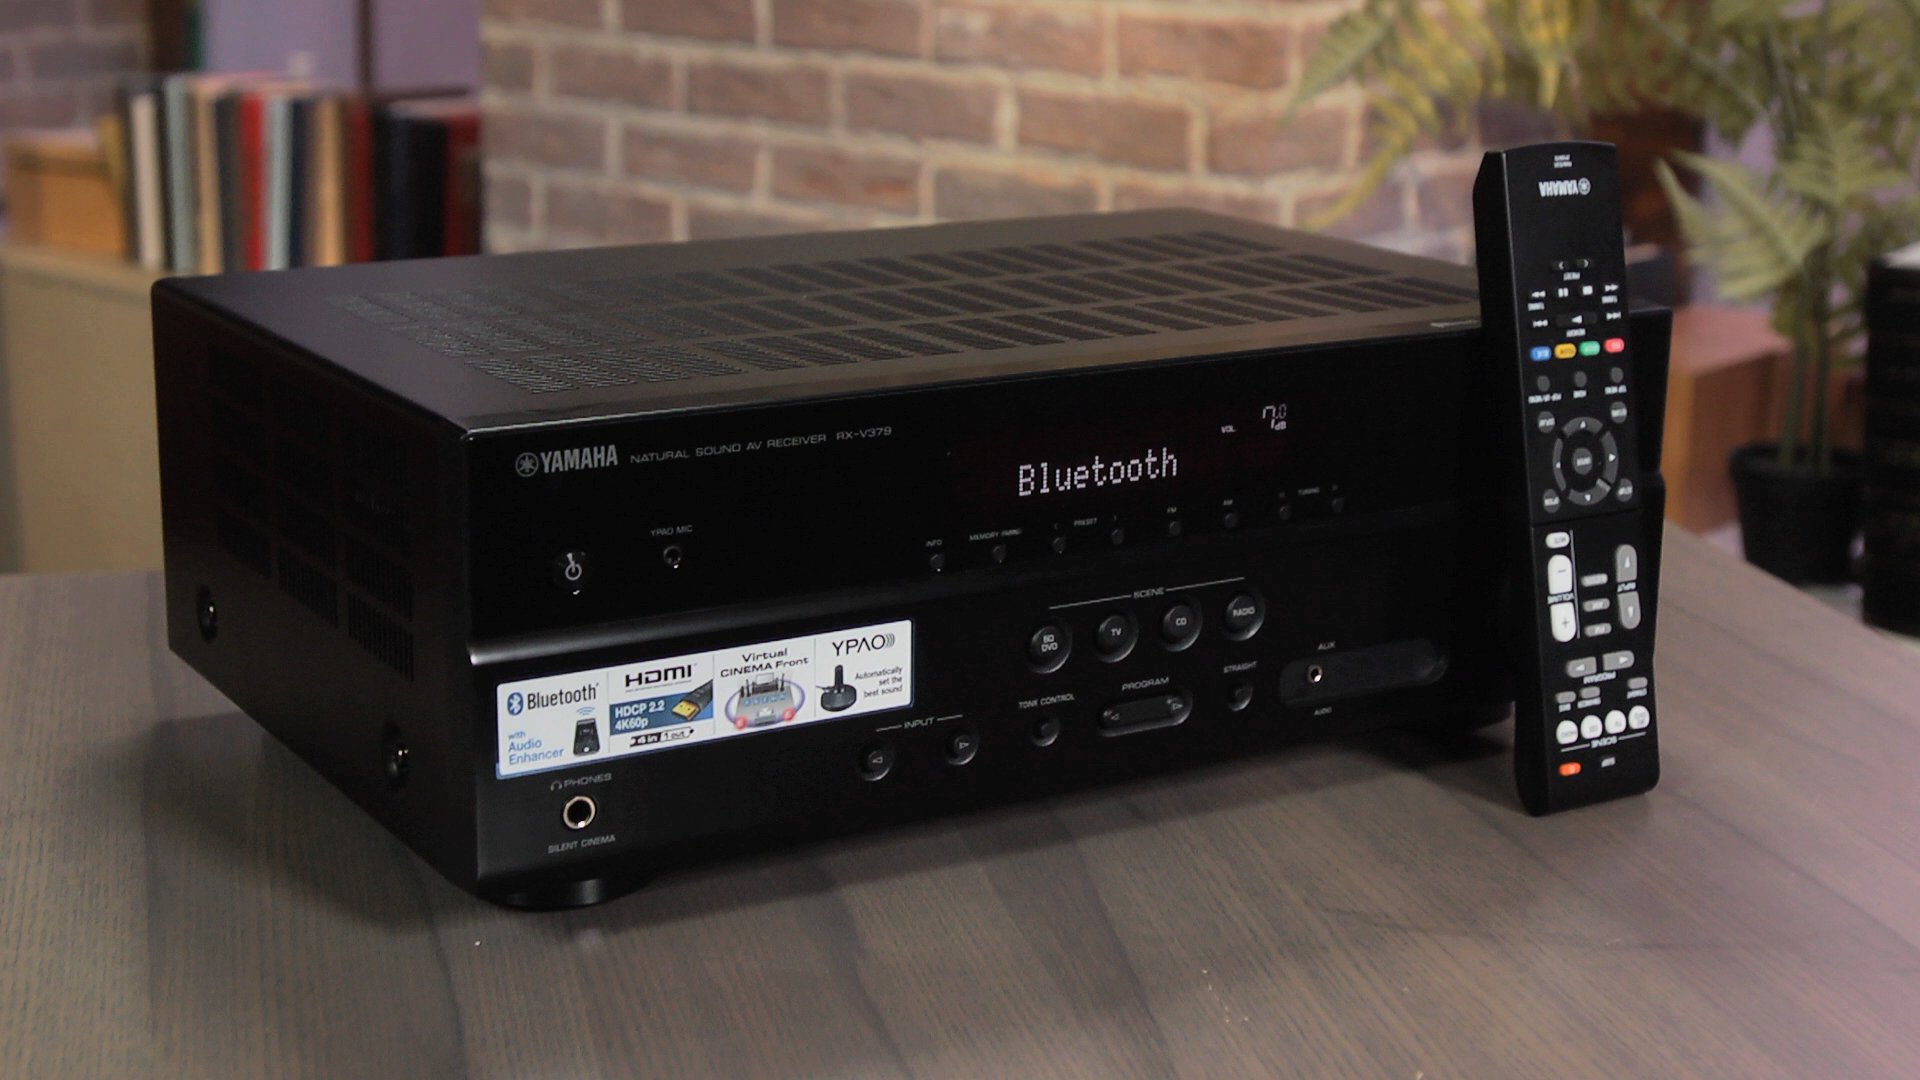 Video: Yamaha RX-V379 offers decent sound at a budget price